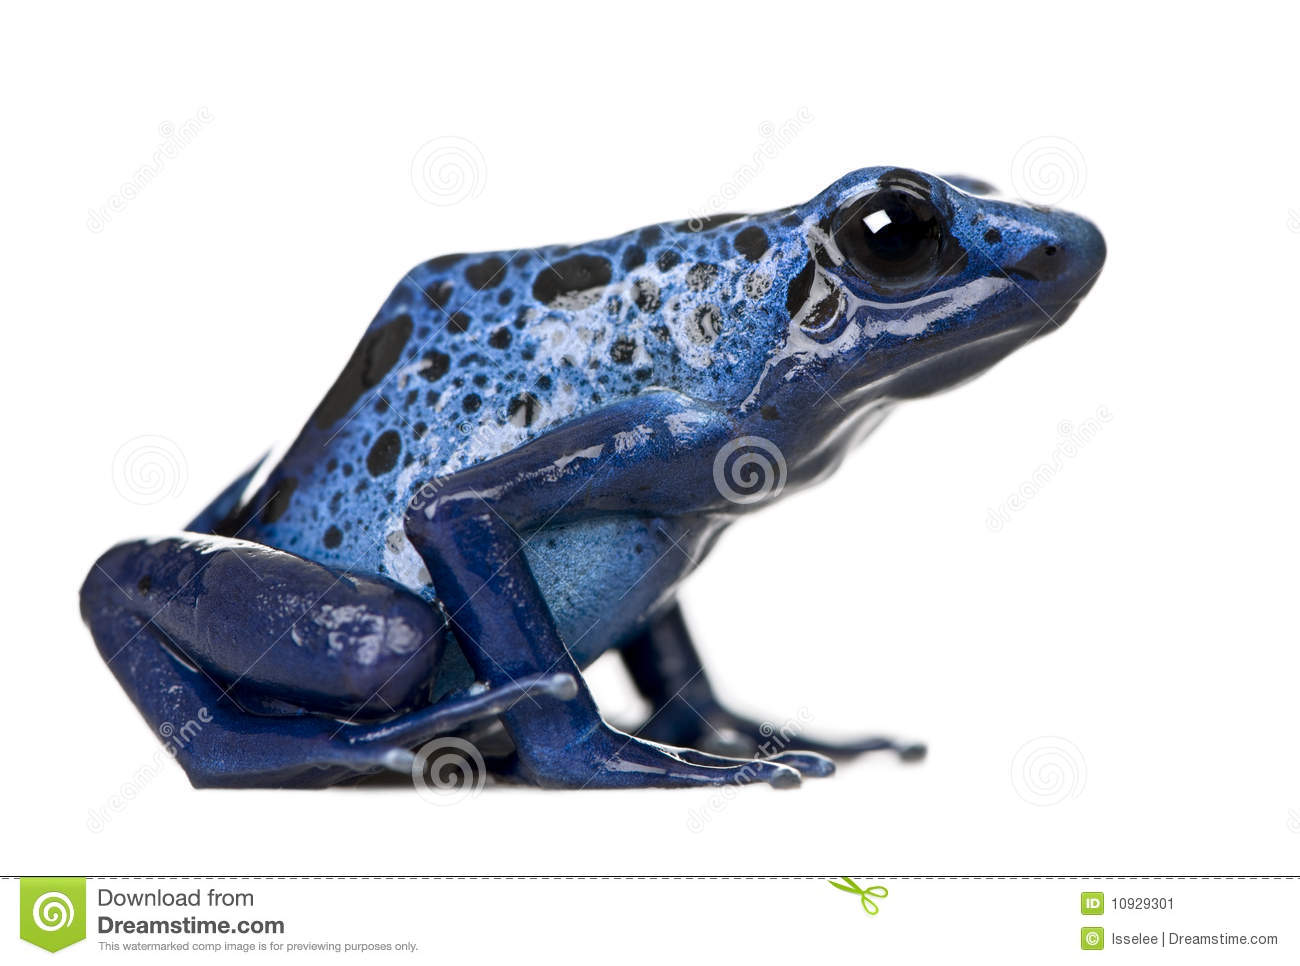 Blue Poison Dart Frog clipart #4, Download drawings